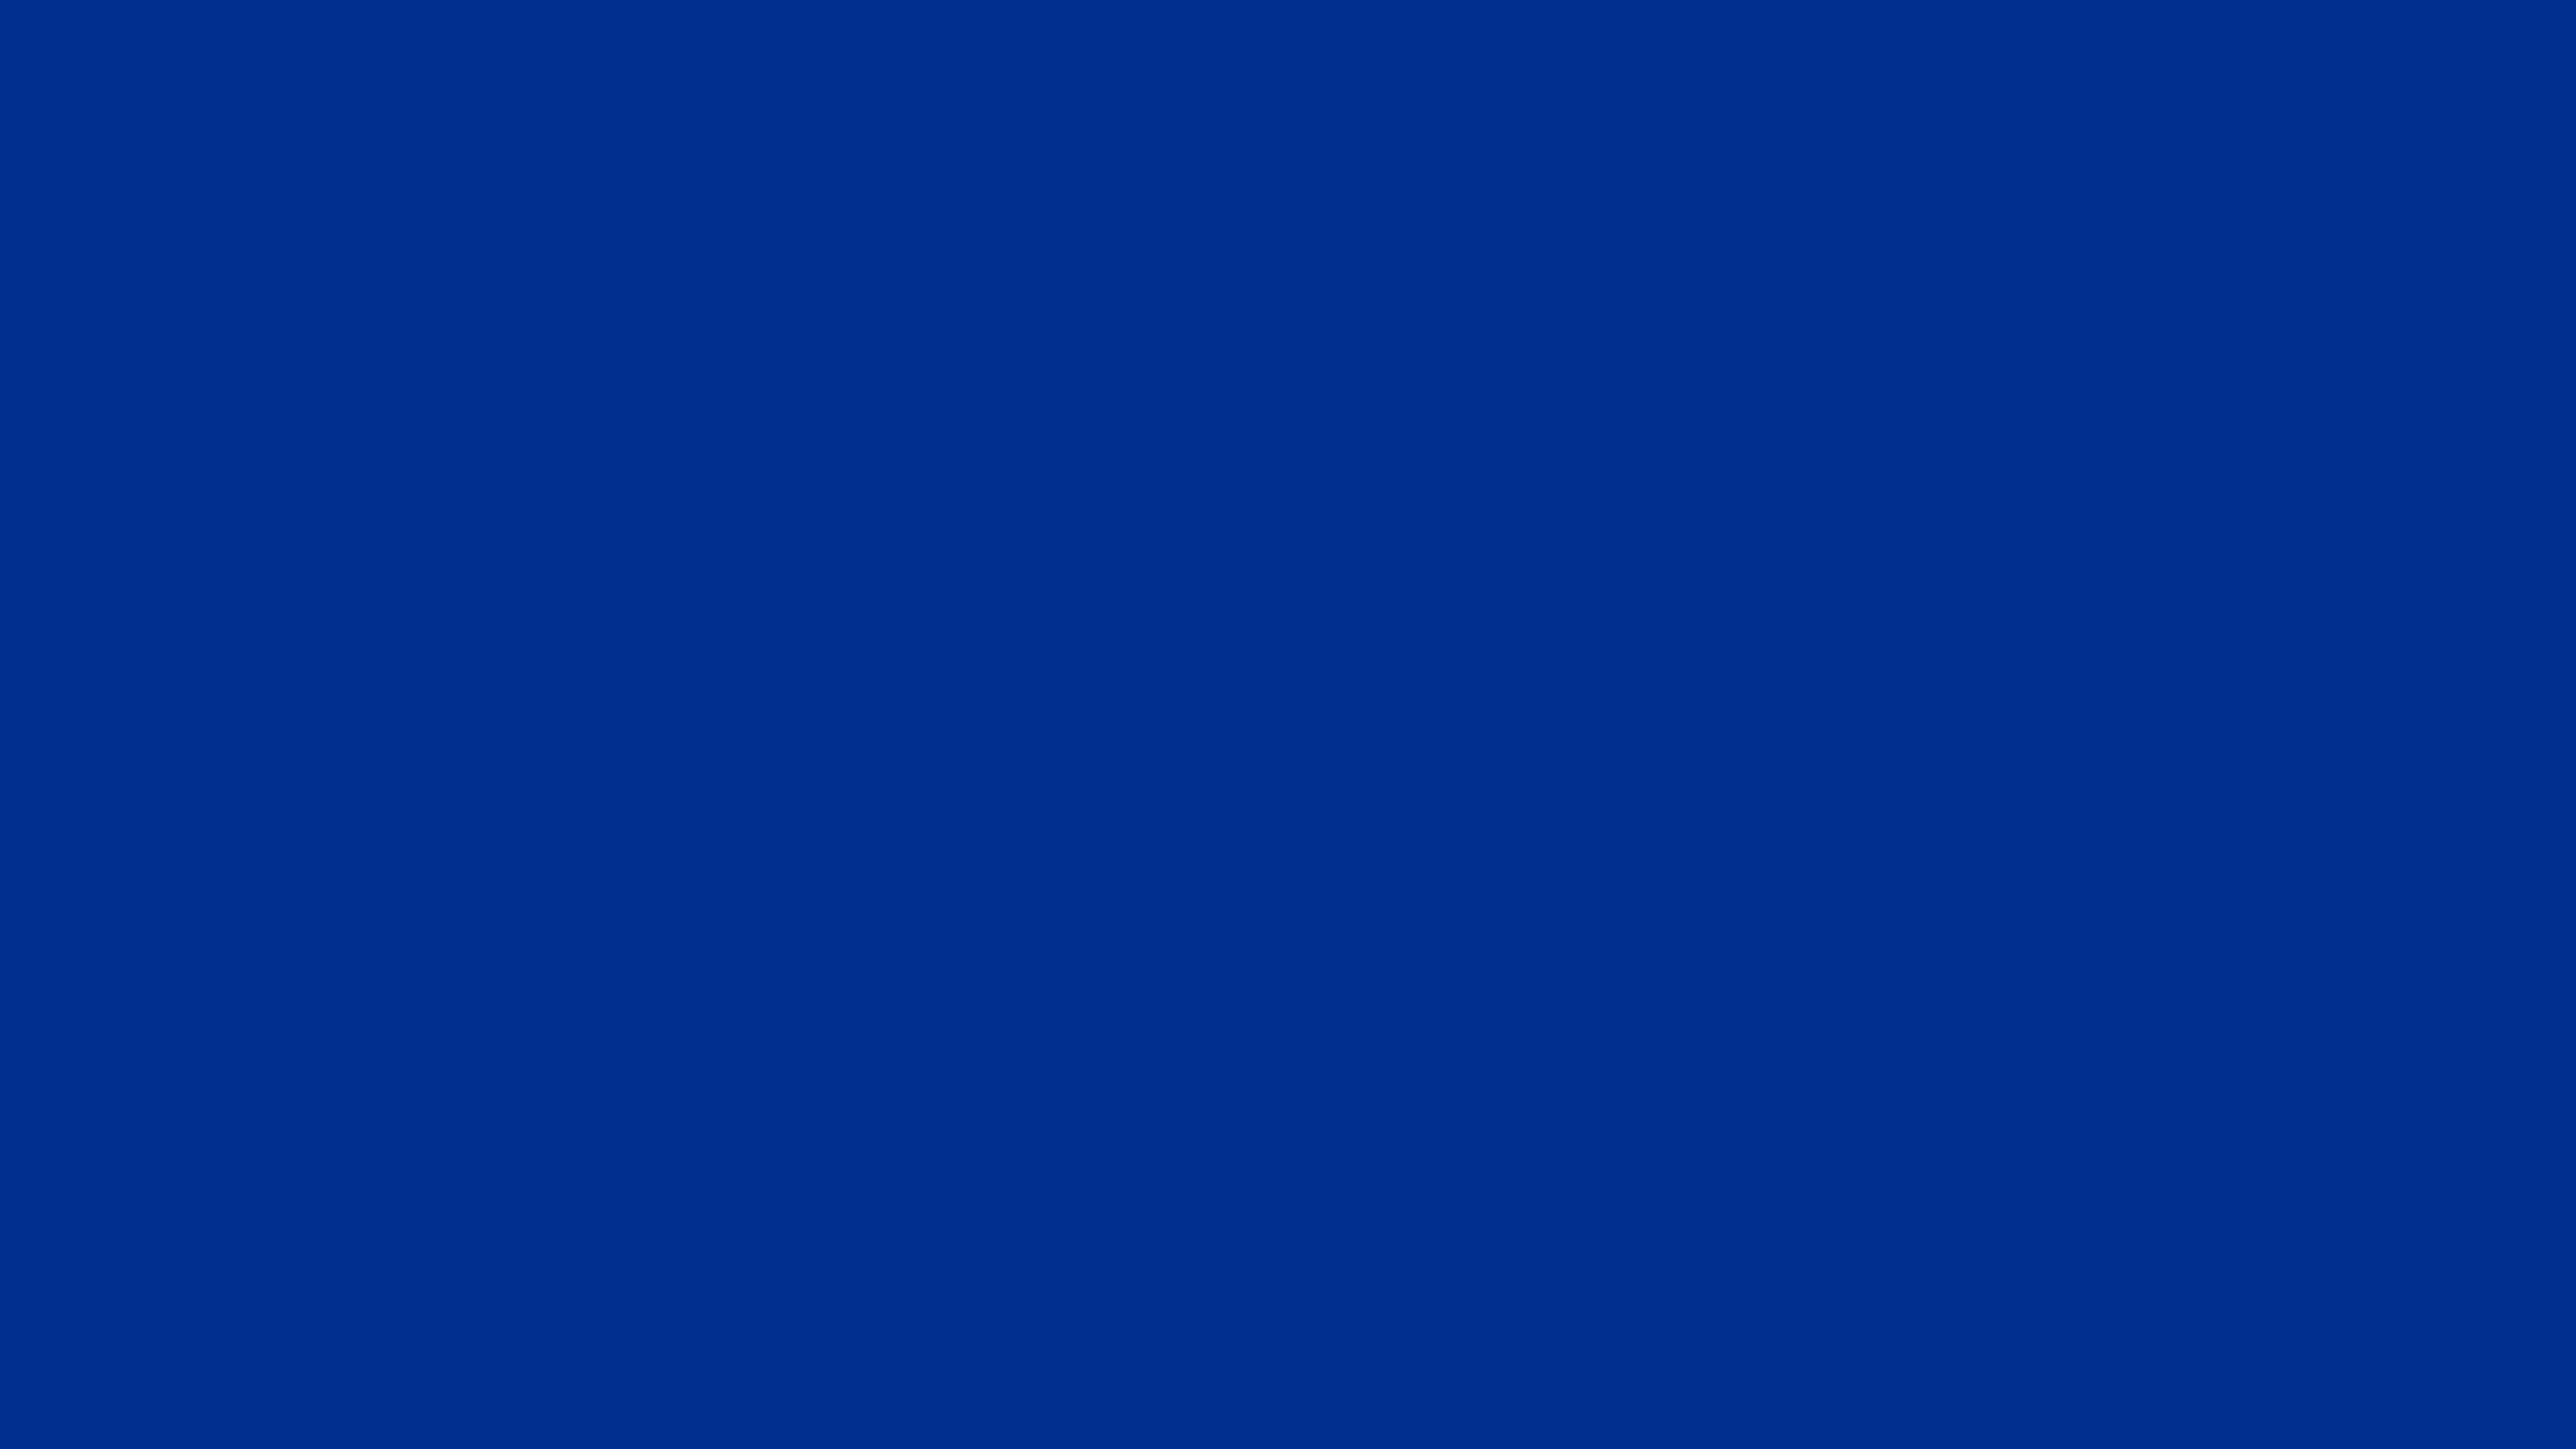 7680x4320 Air Force Dark Blue Solid Color Background